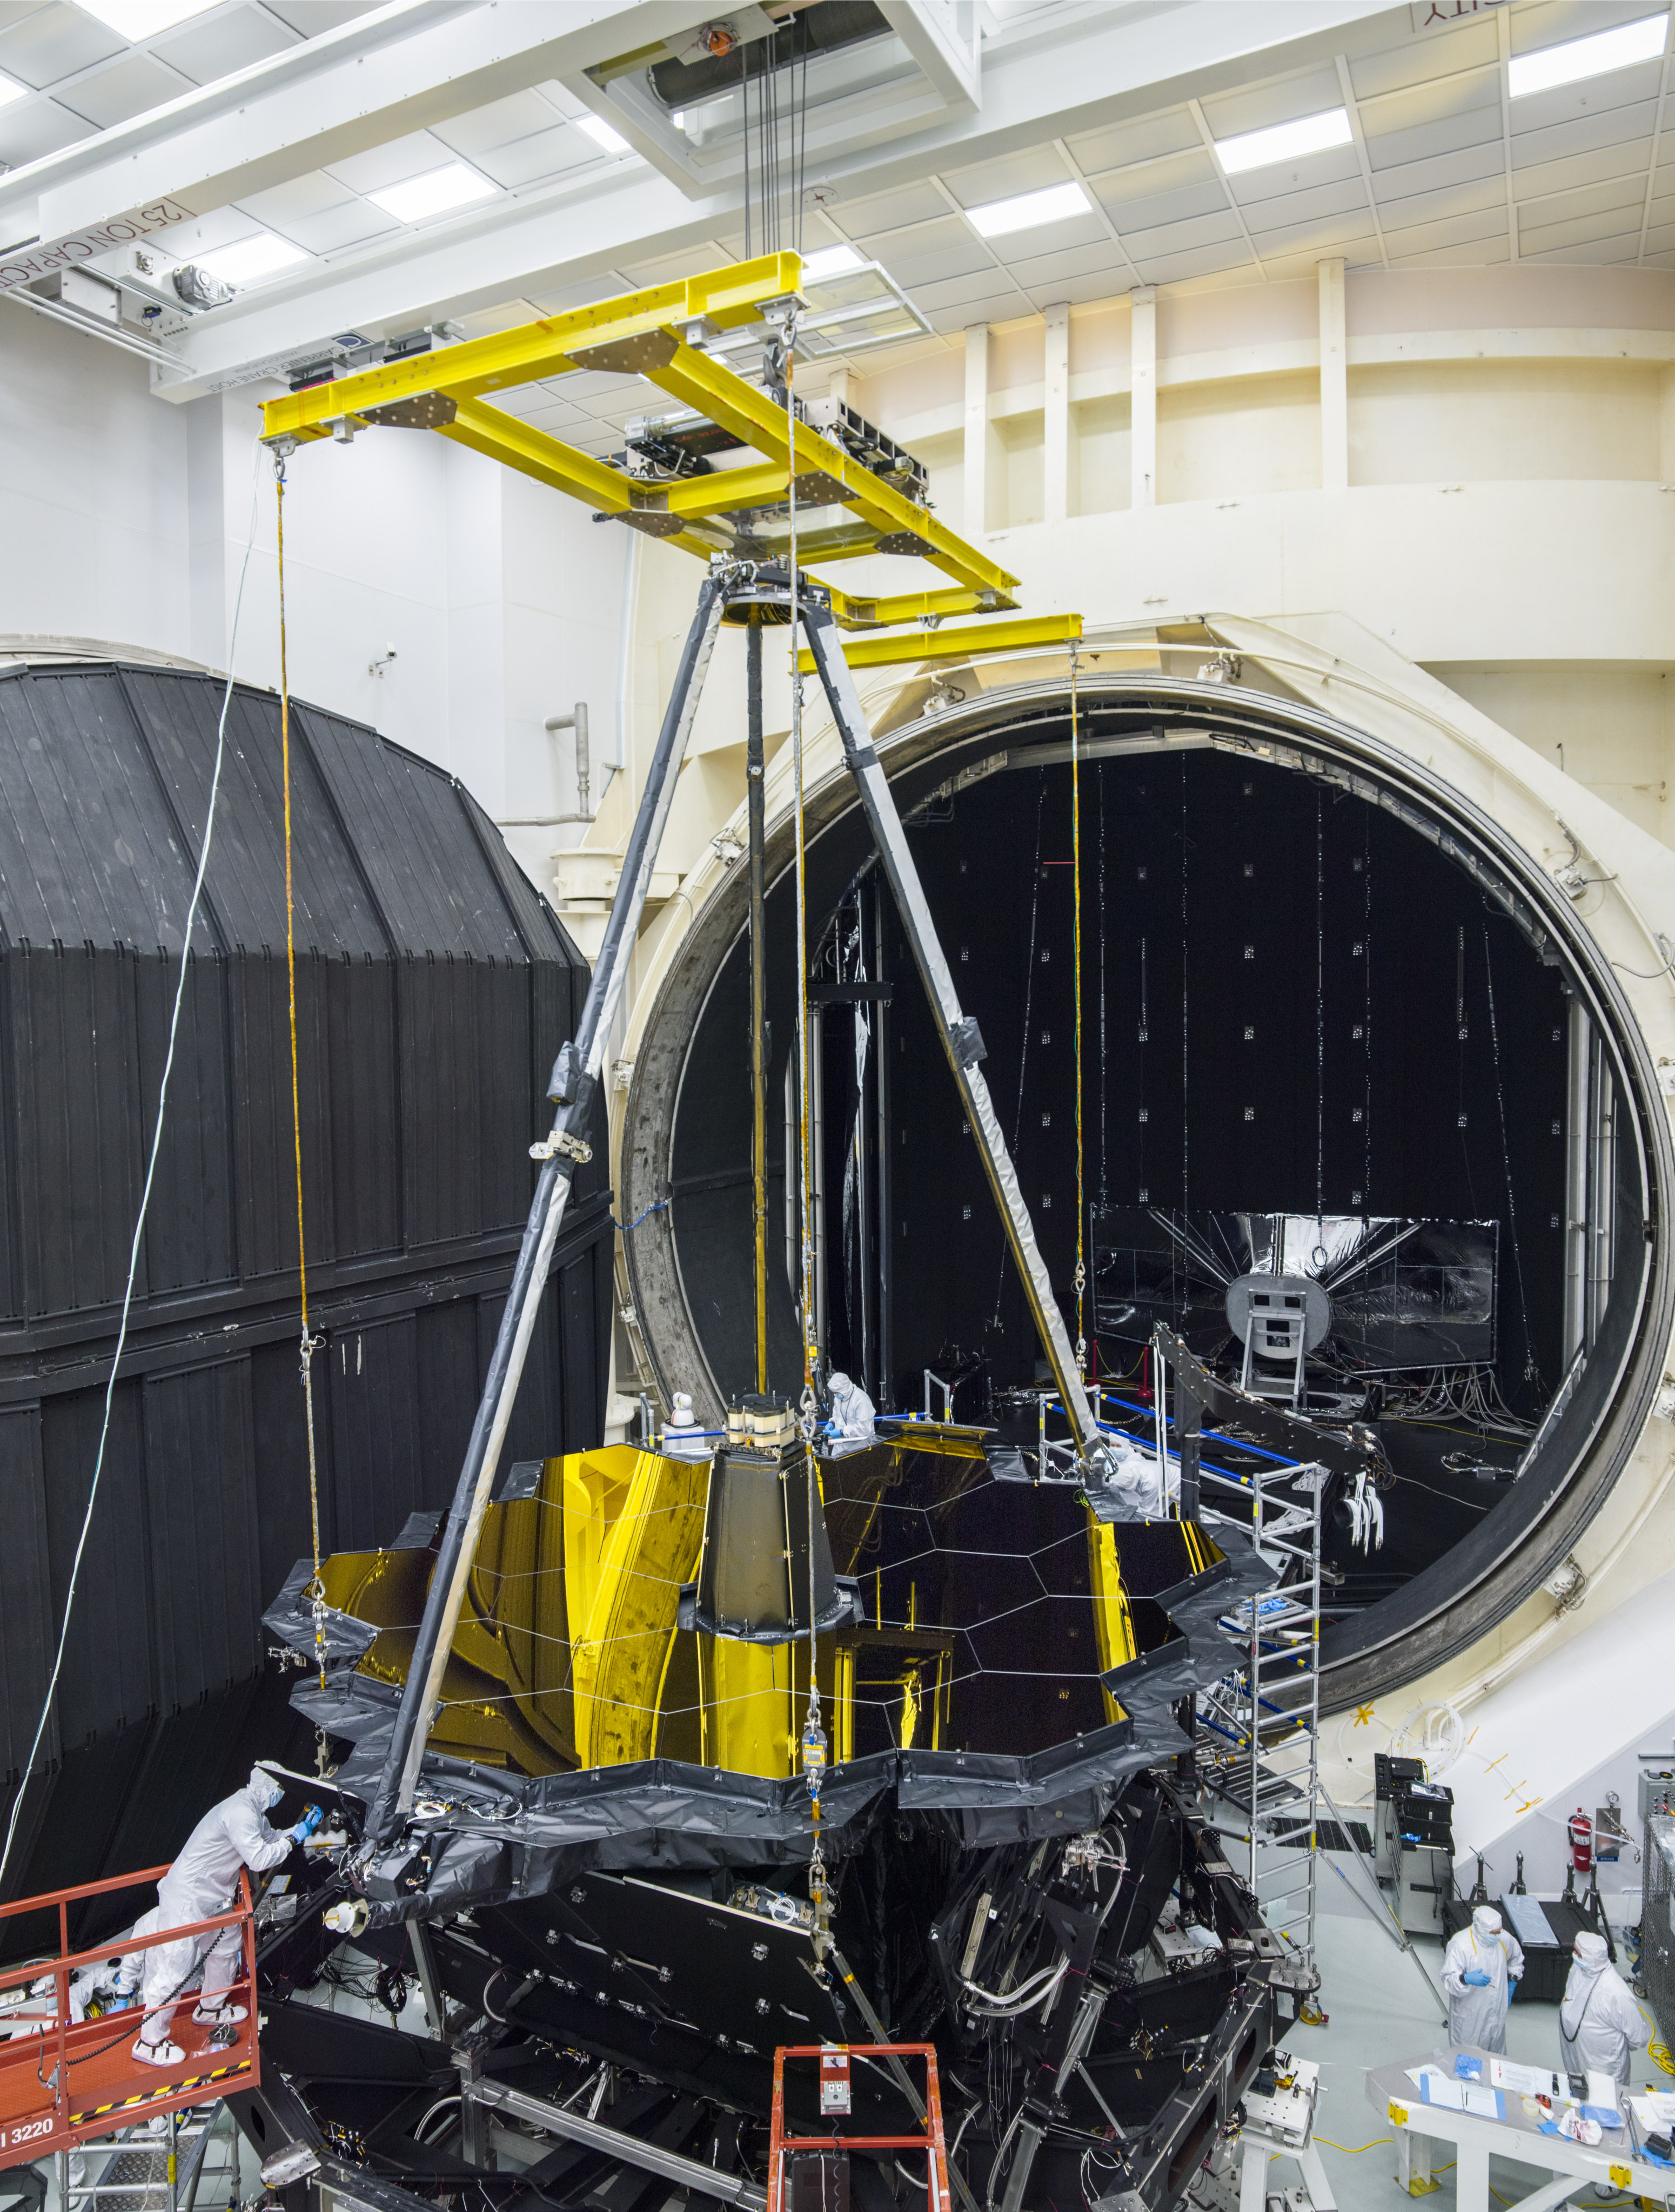 The James Webb Space Telescope for testing being placed in a thermal vacuum chamber.